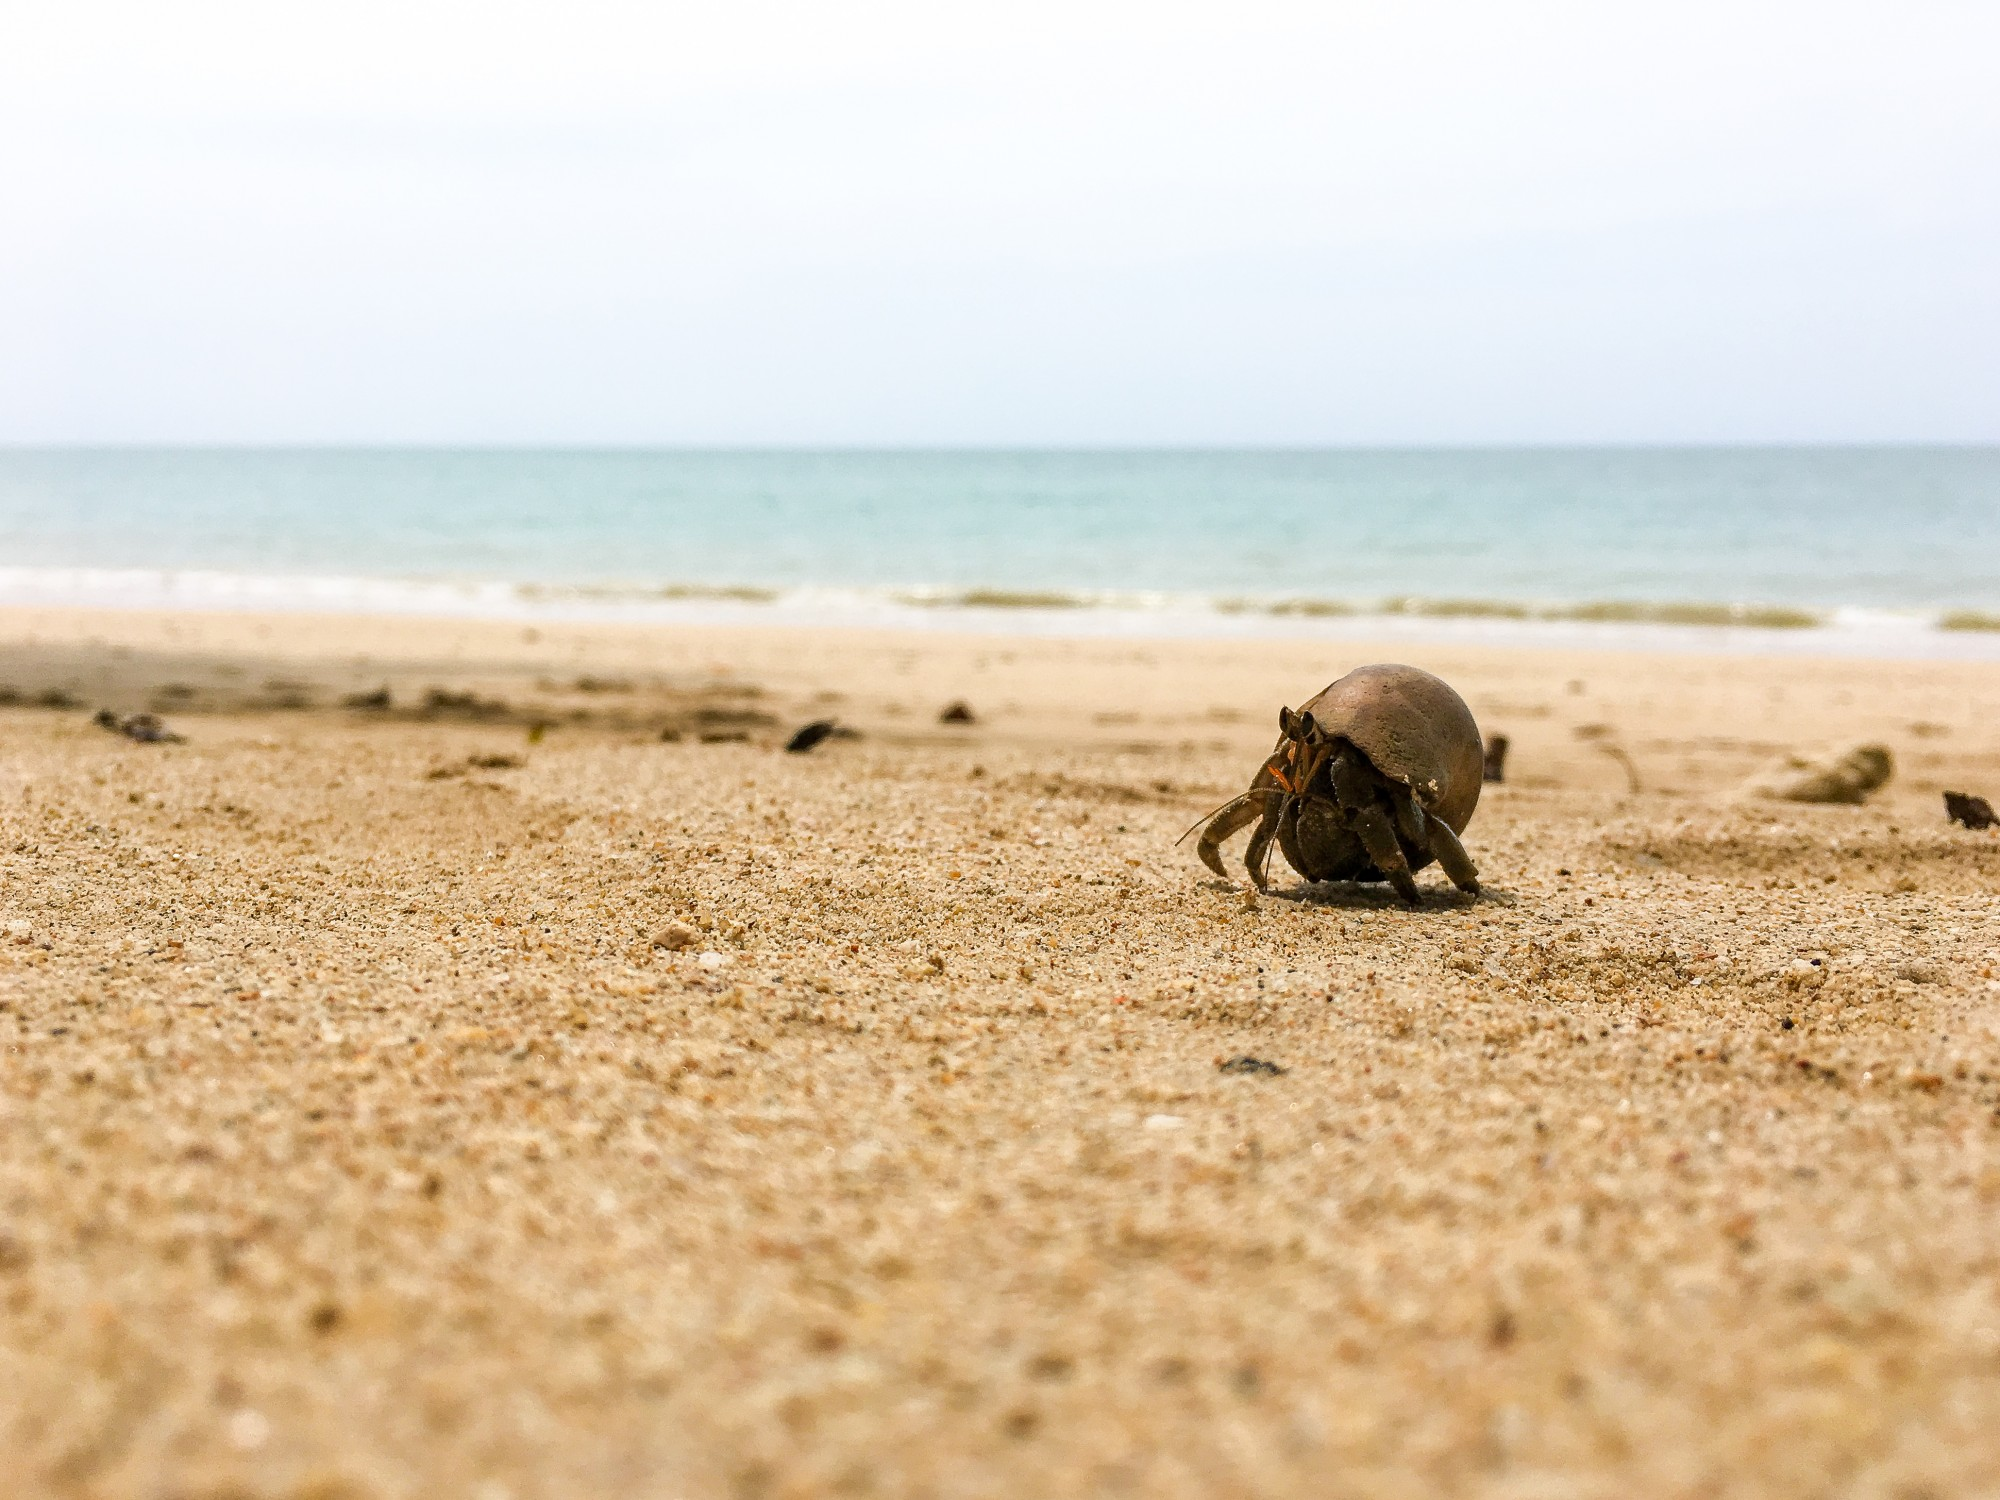 Hermit Crab at White Sand Beach (Ao Thong beach) in Khao Lak